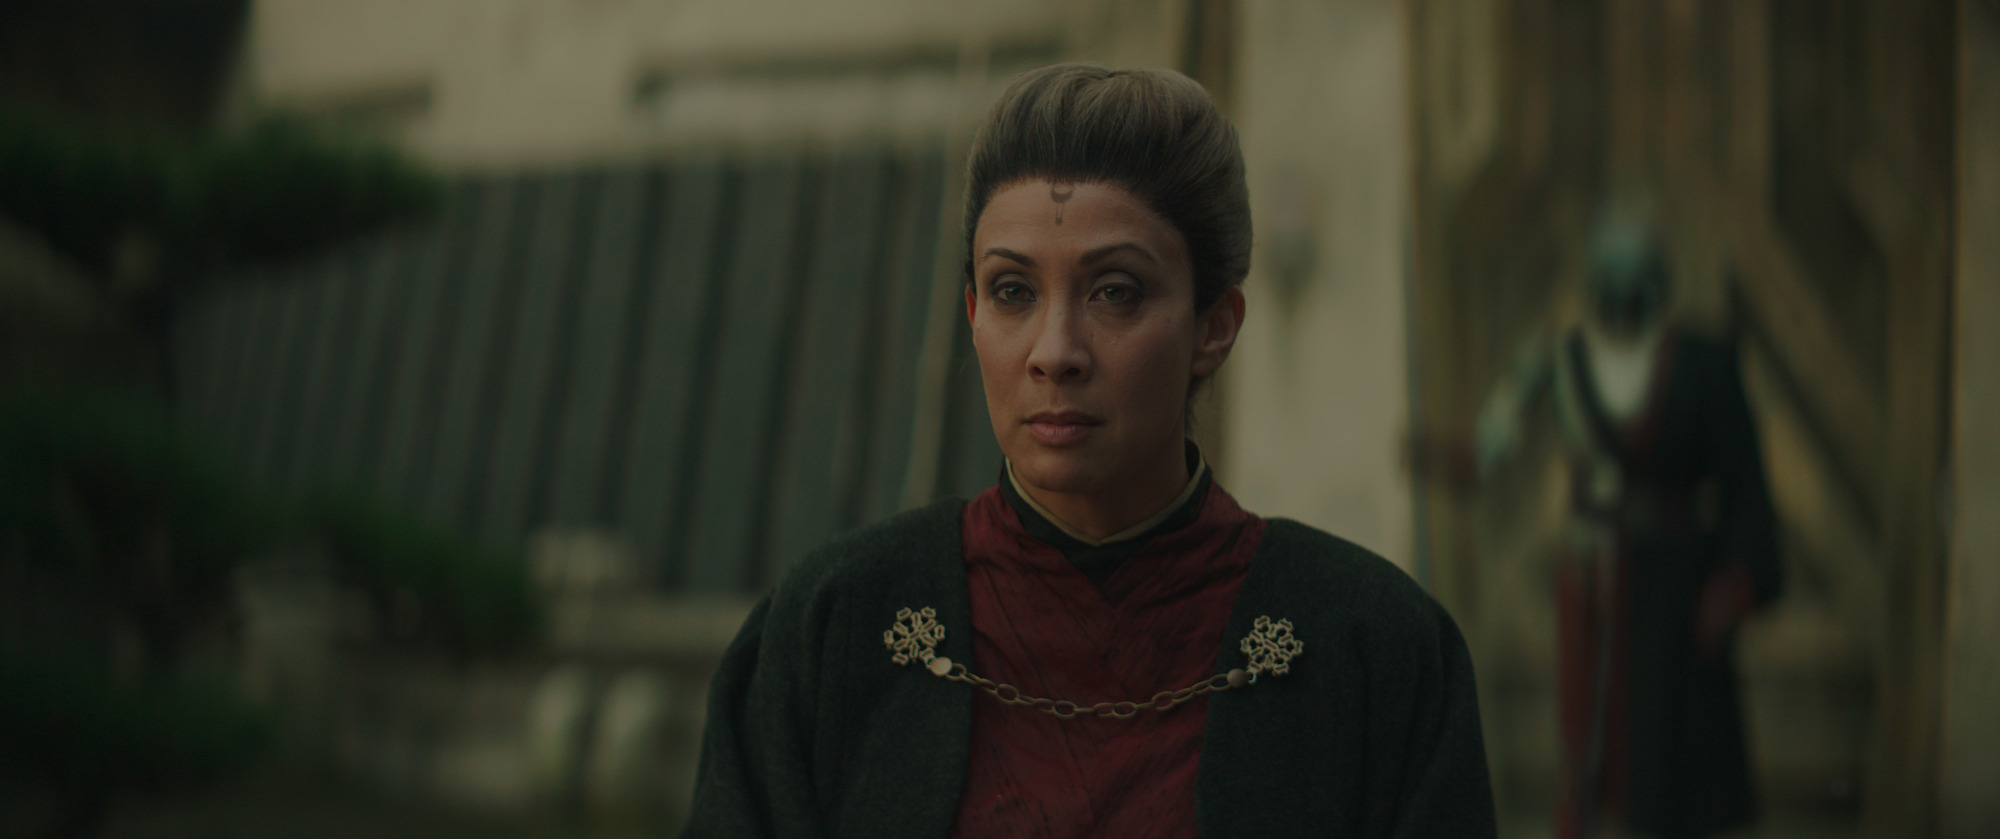 The Magistrate in Episode 5 of 'The Mandalorian'